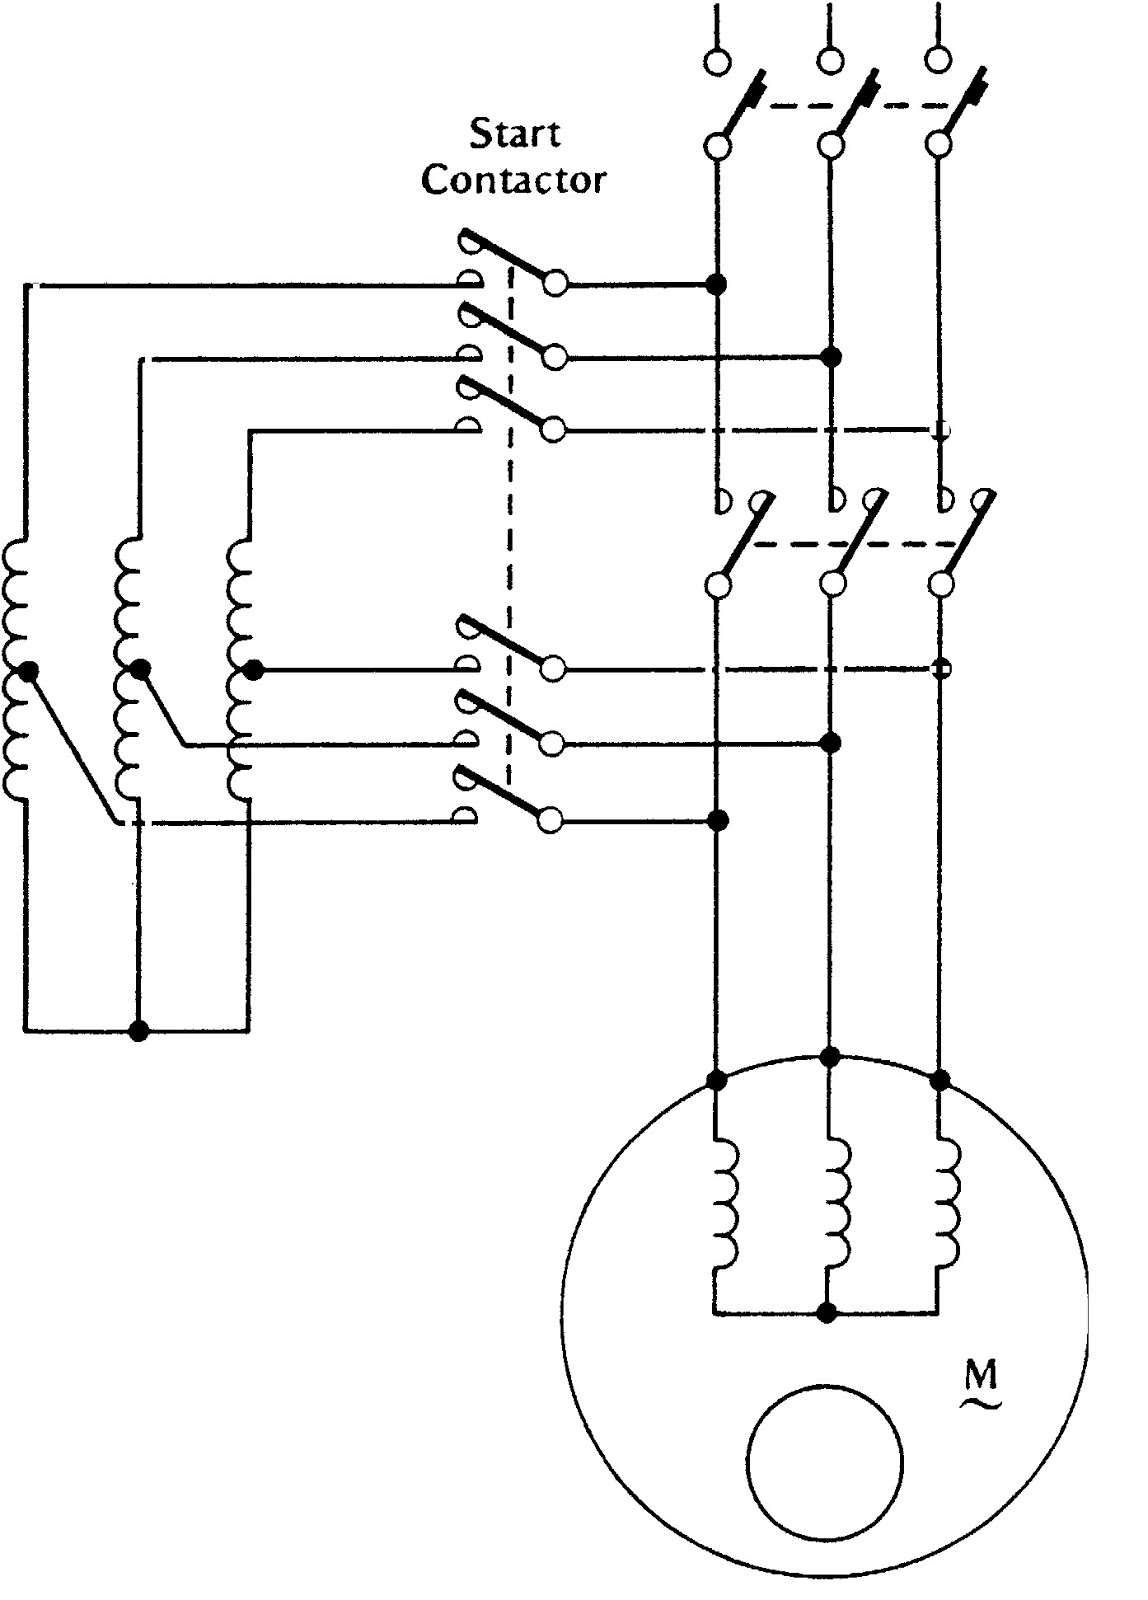 Reliance Motor Wiring Diagram Thermistor Archive Of Automotive